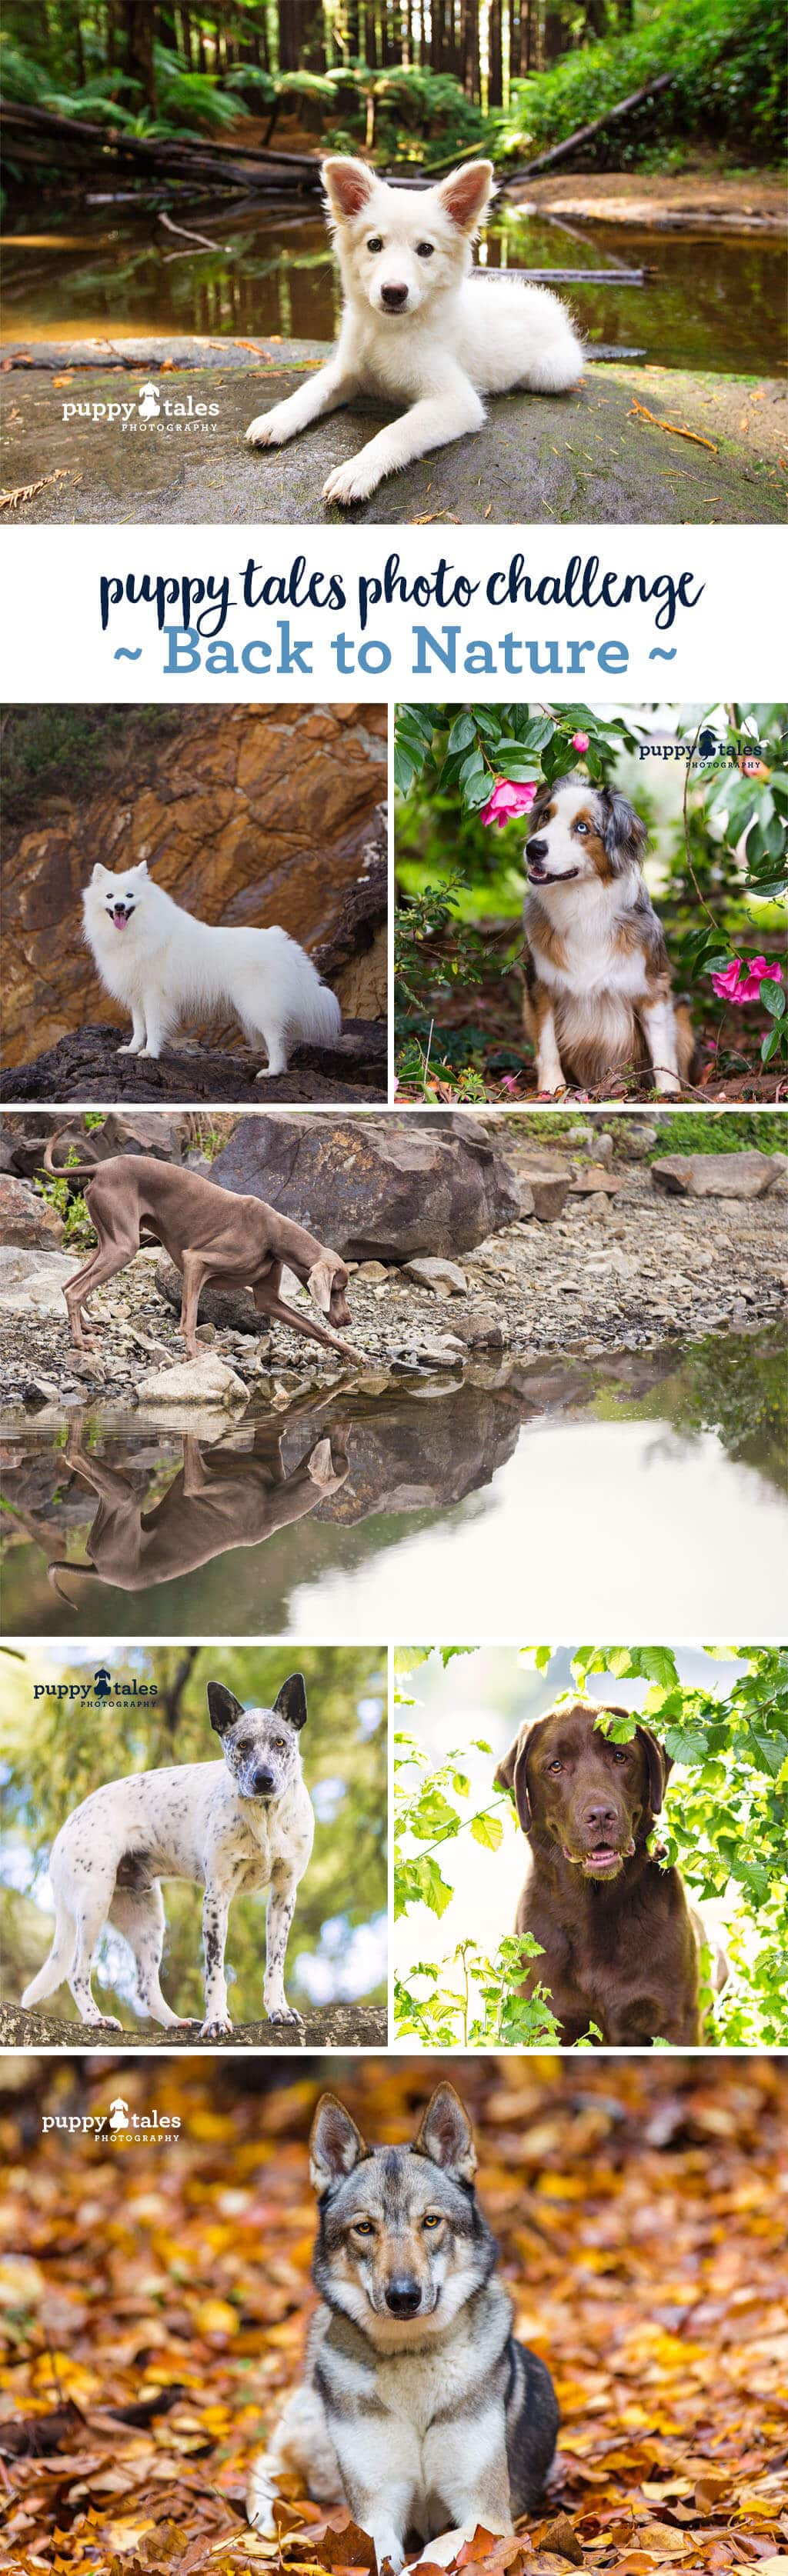 Puppy Tales Photo Challenge ~ Back to Nature